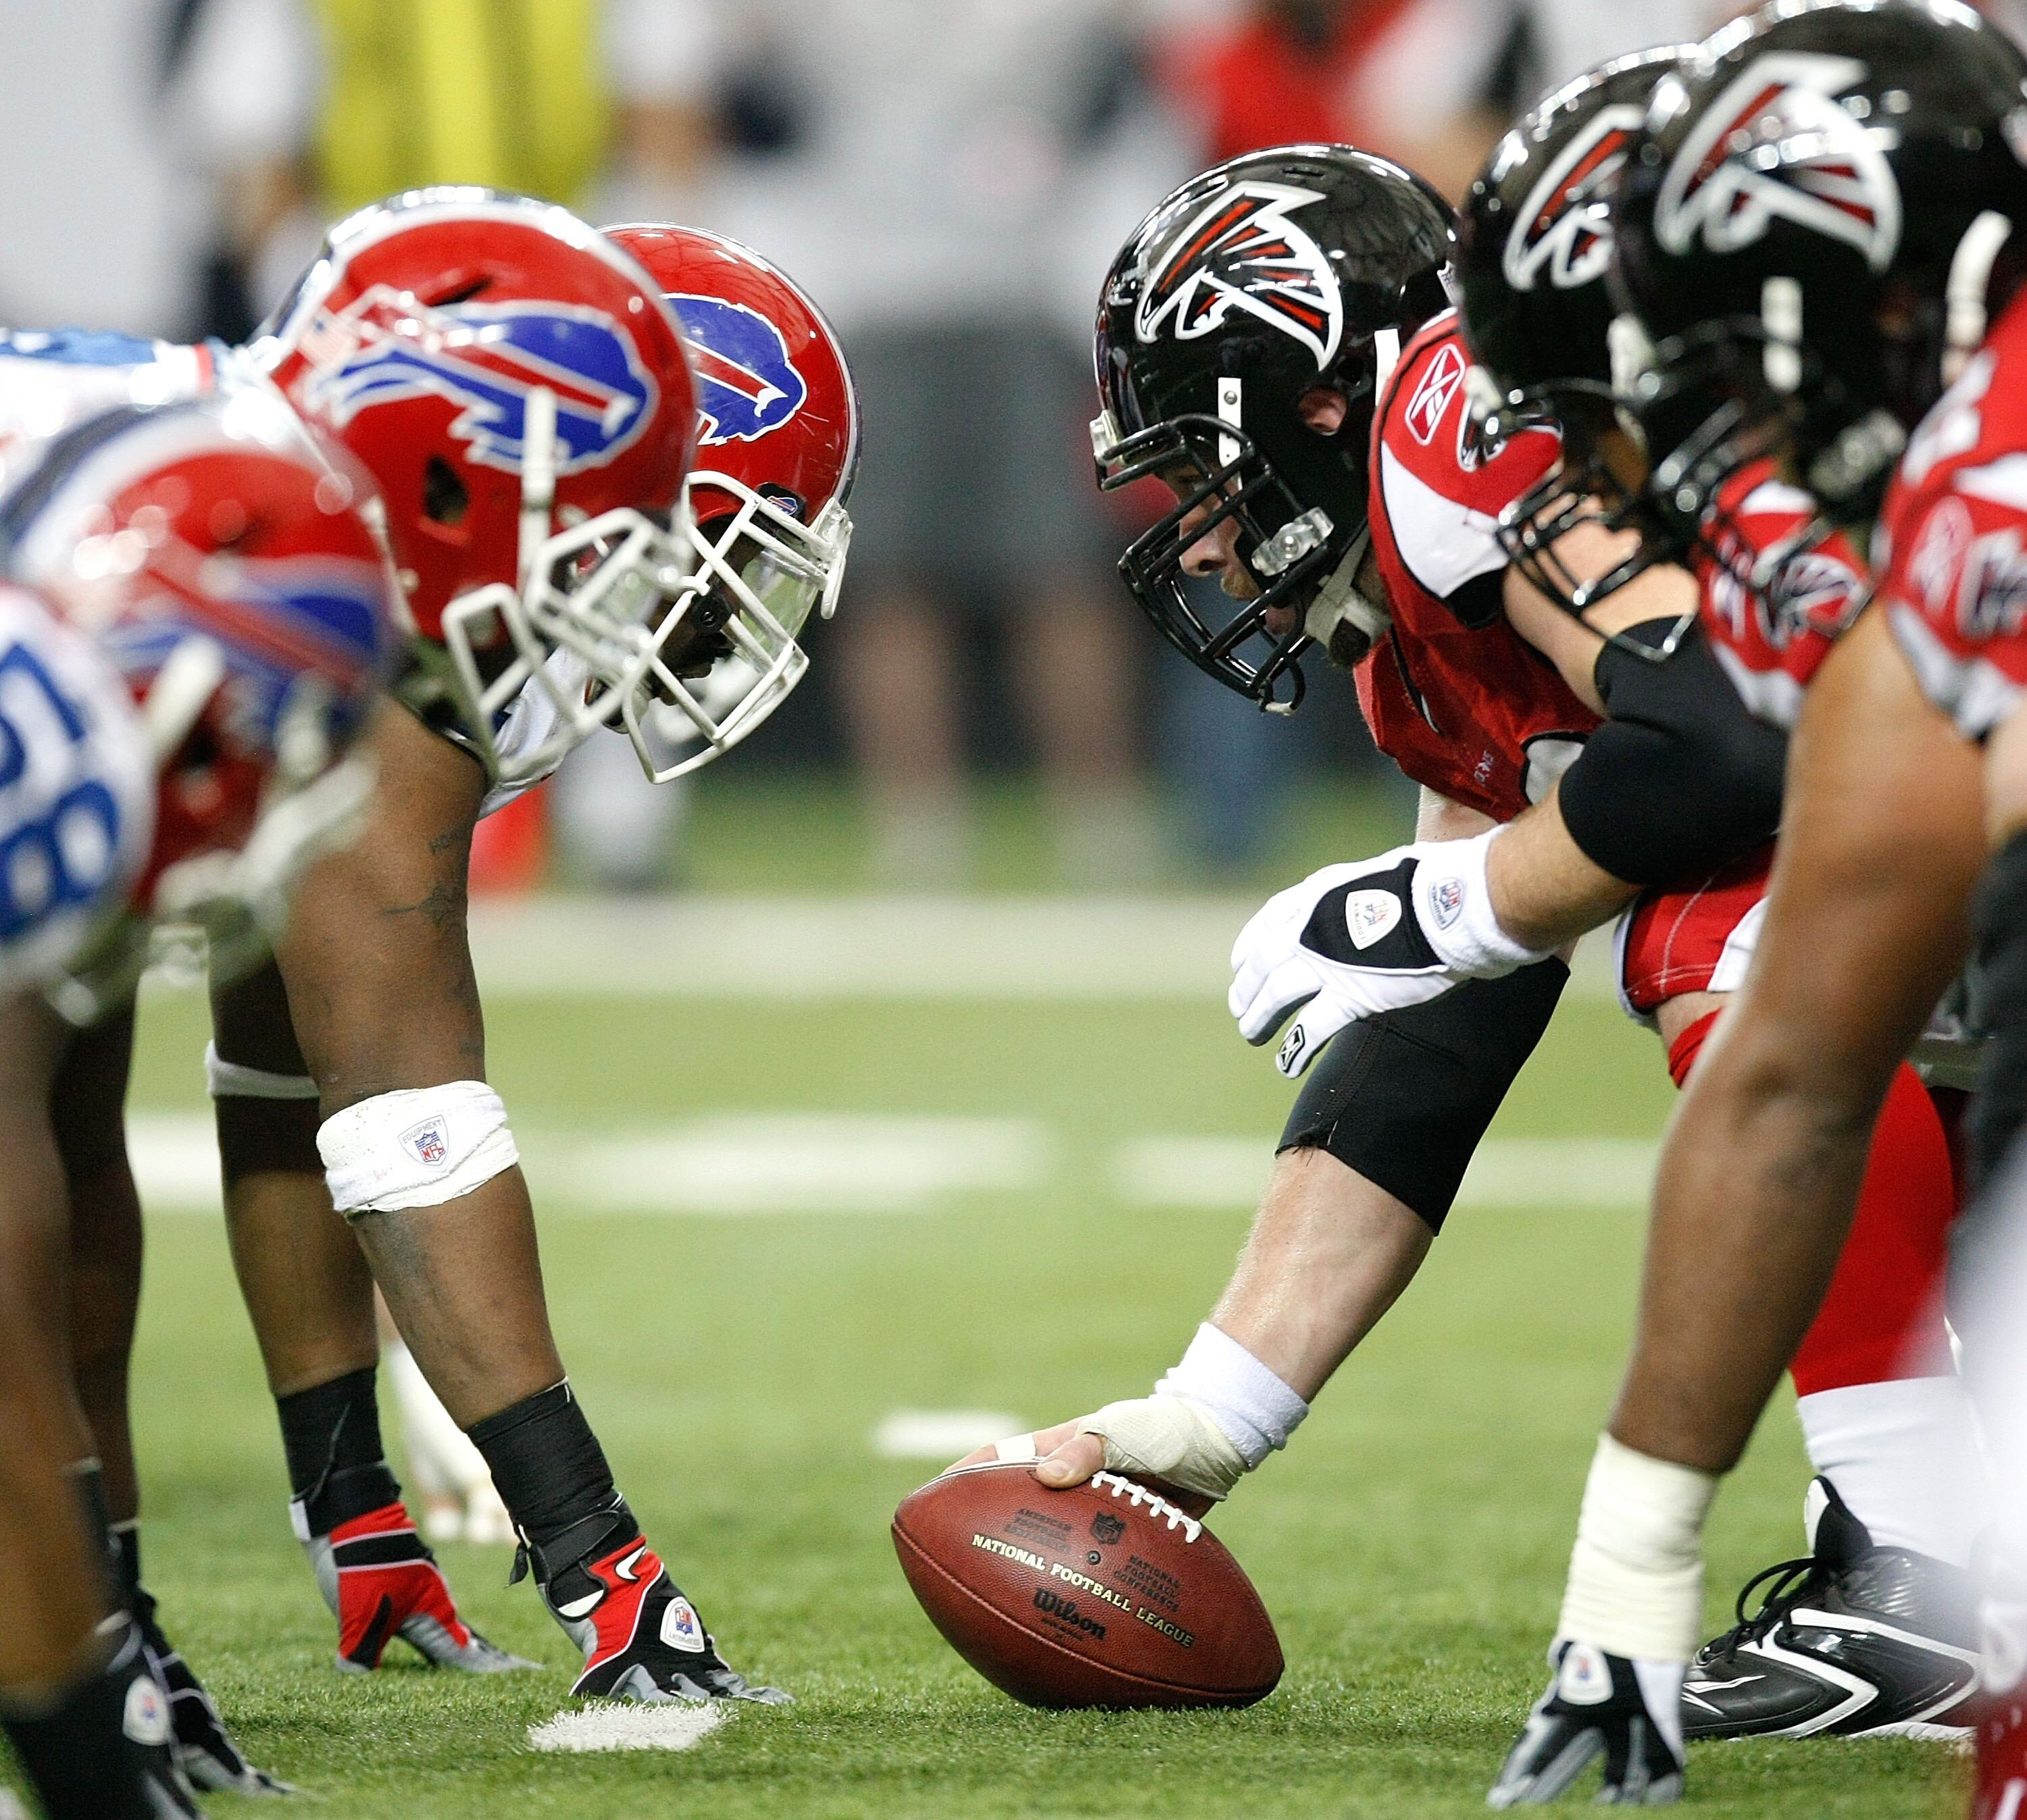 96400919-buffalo-bills-v-atlanta-falcons.jpg